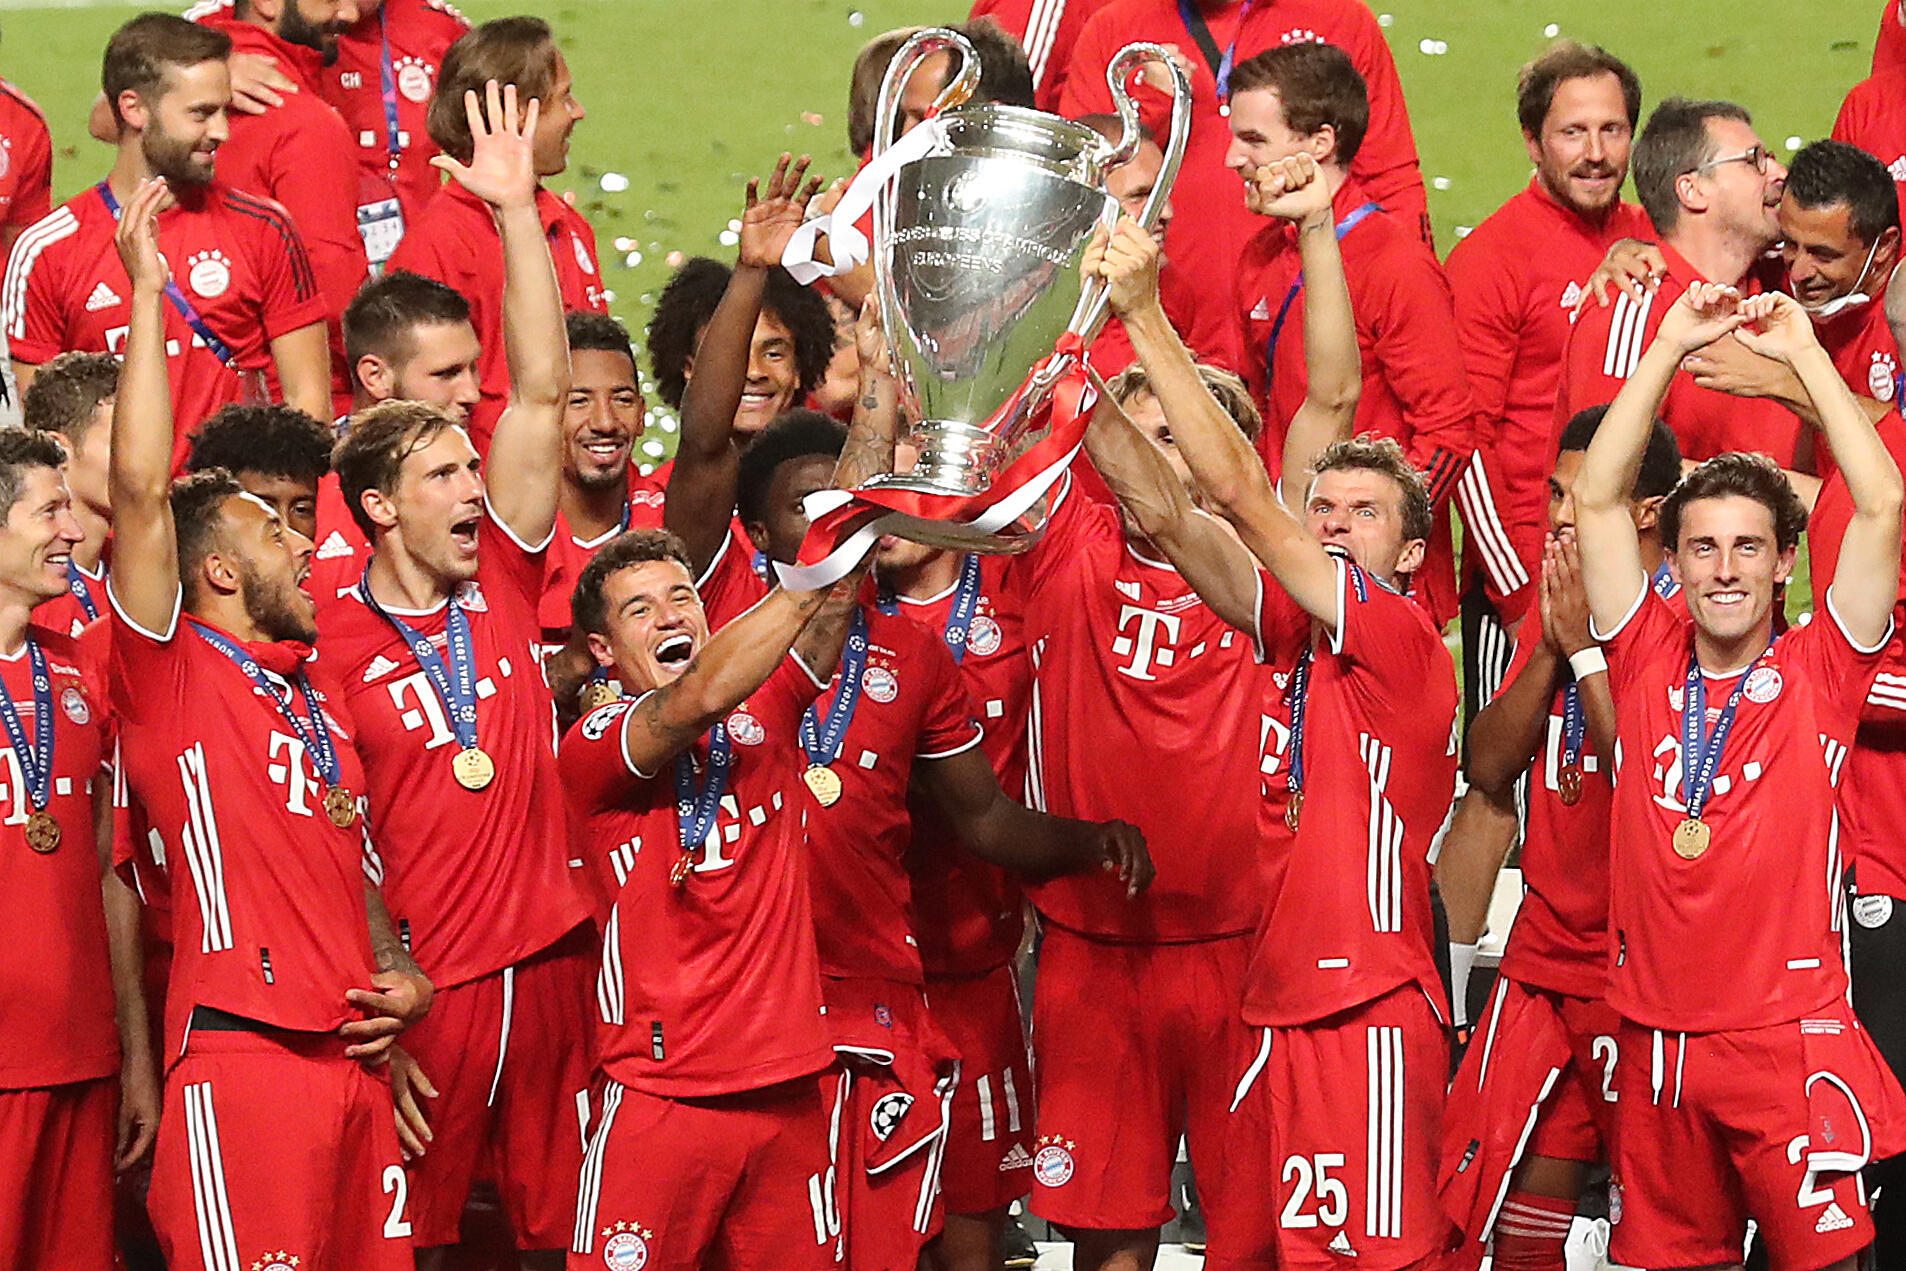 Bayern Munich completed a second treble in seven years after beating PSG 1-0 in the Champions League final in Lisbon